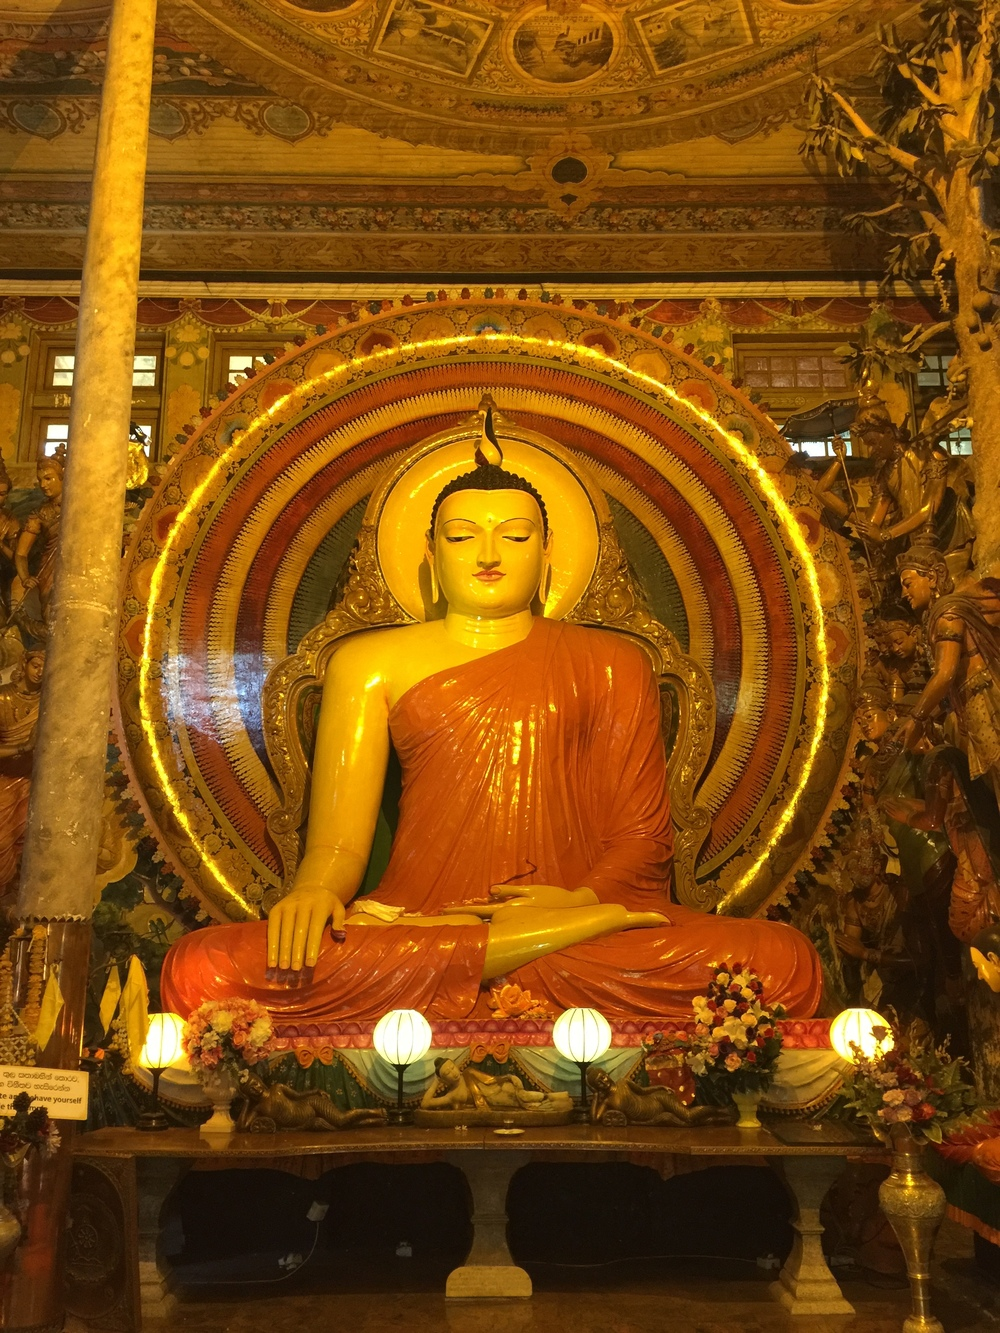 One of the amazing Buddha statues in this temple.